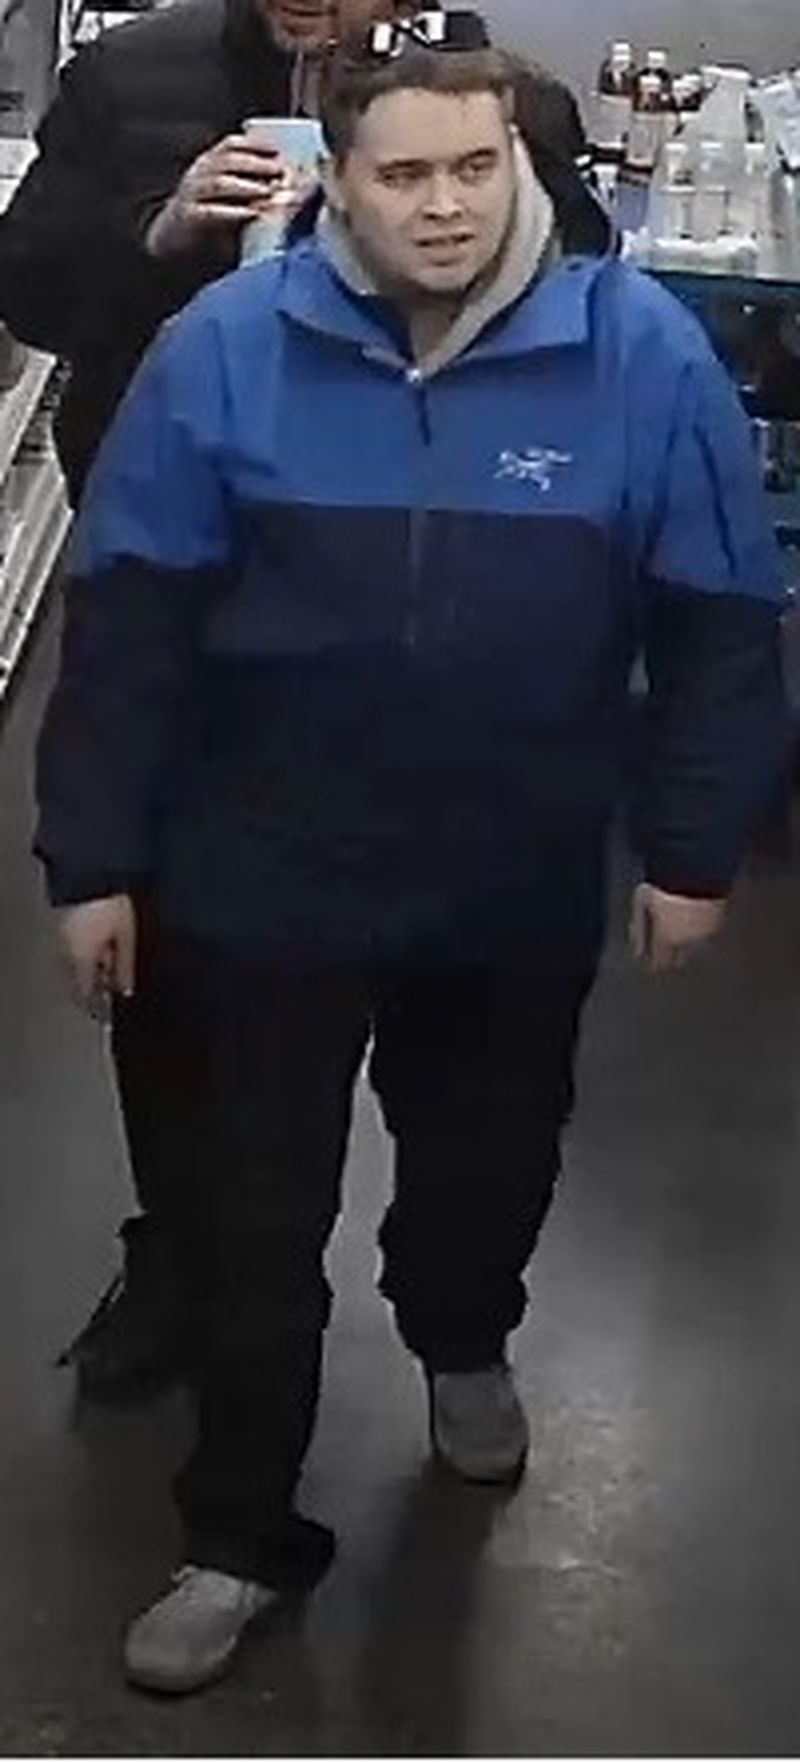 Suspect #2 in Theft Over $5000 investigation